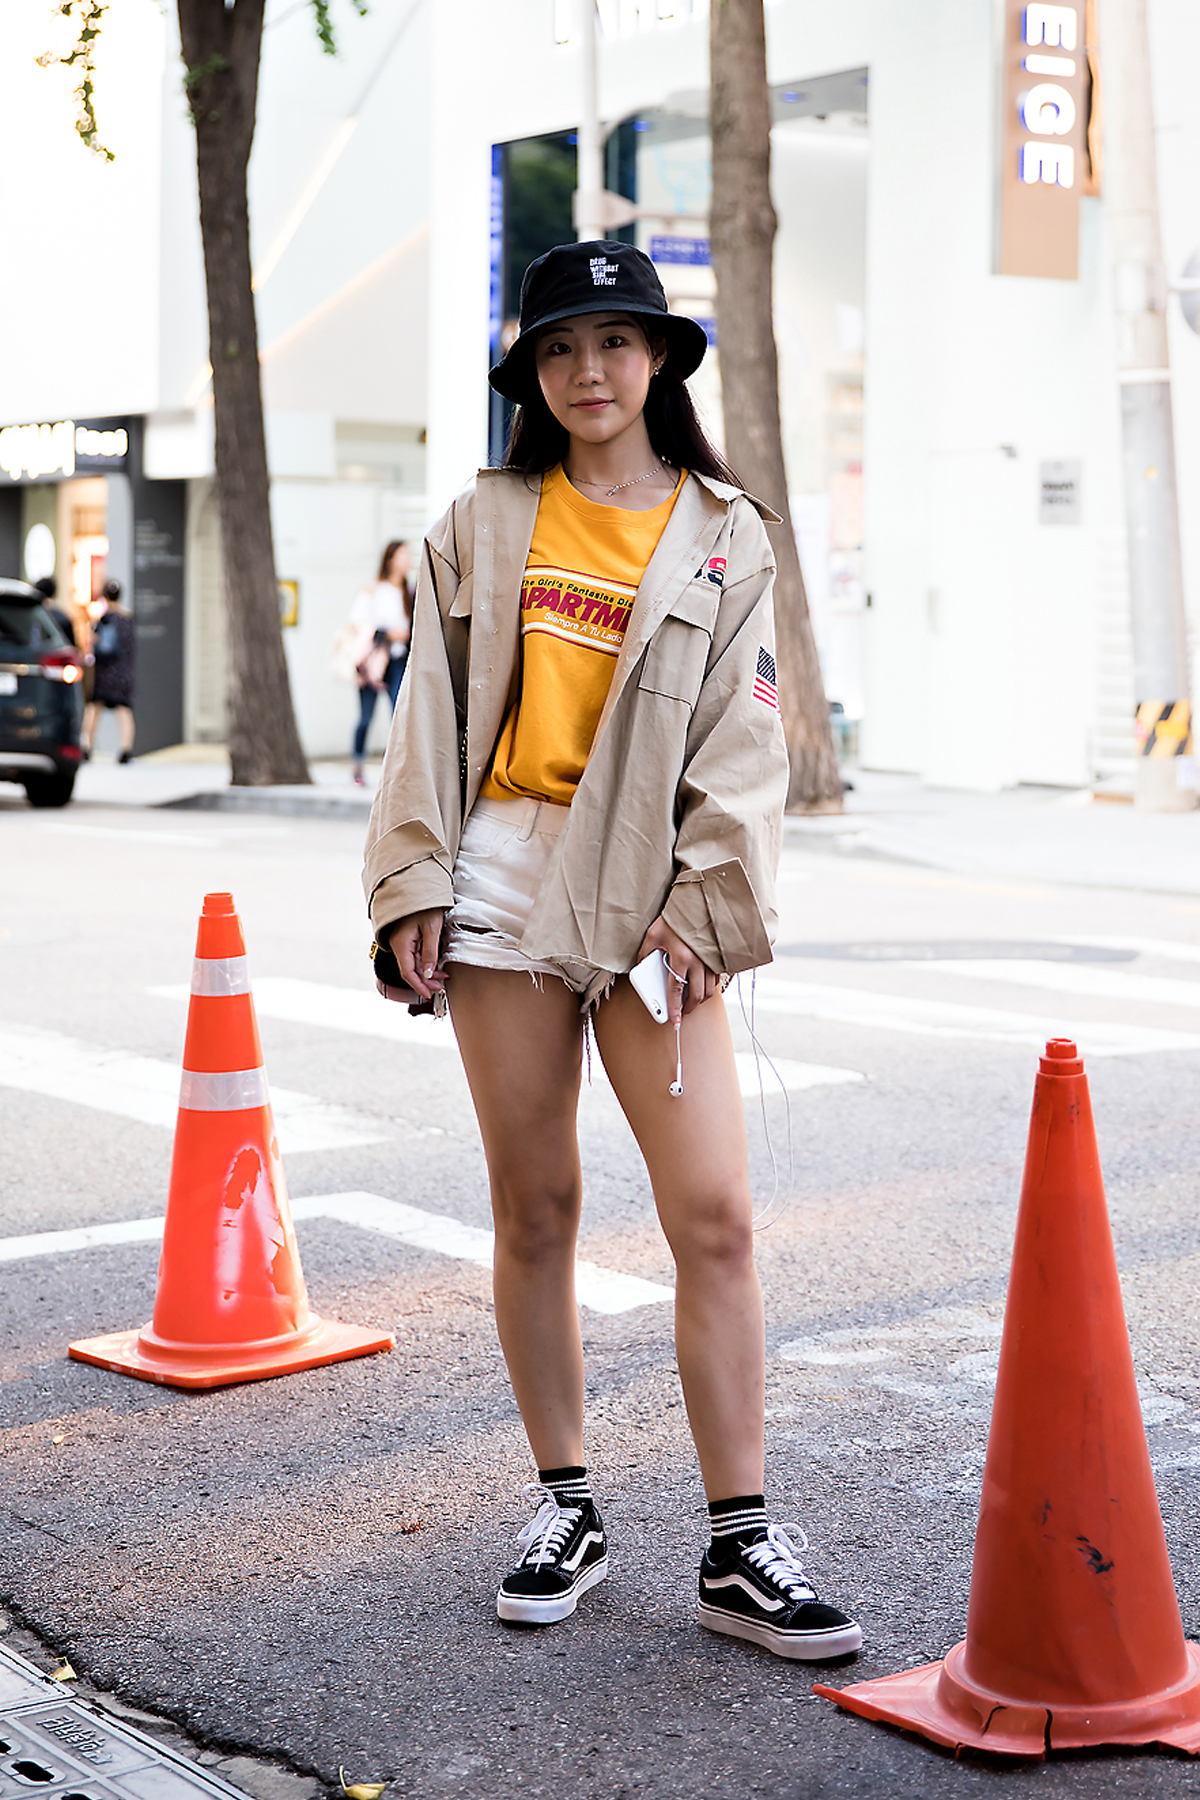 Woo We, Street Fashion 2017 in Seoul.jpg